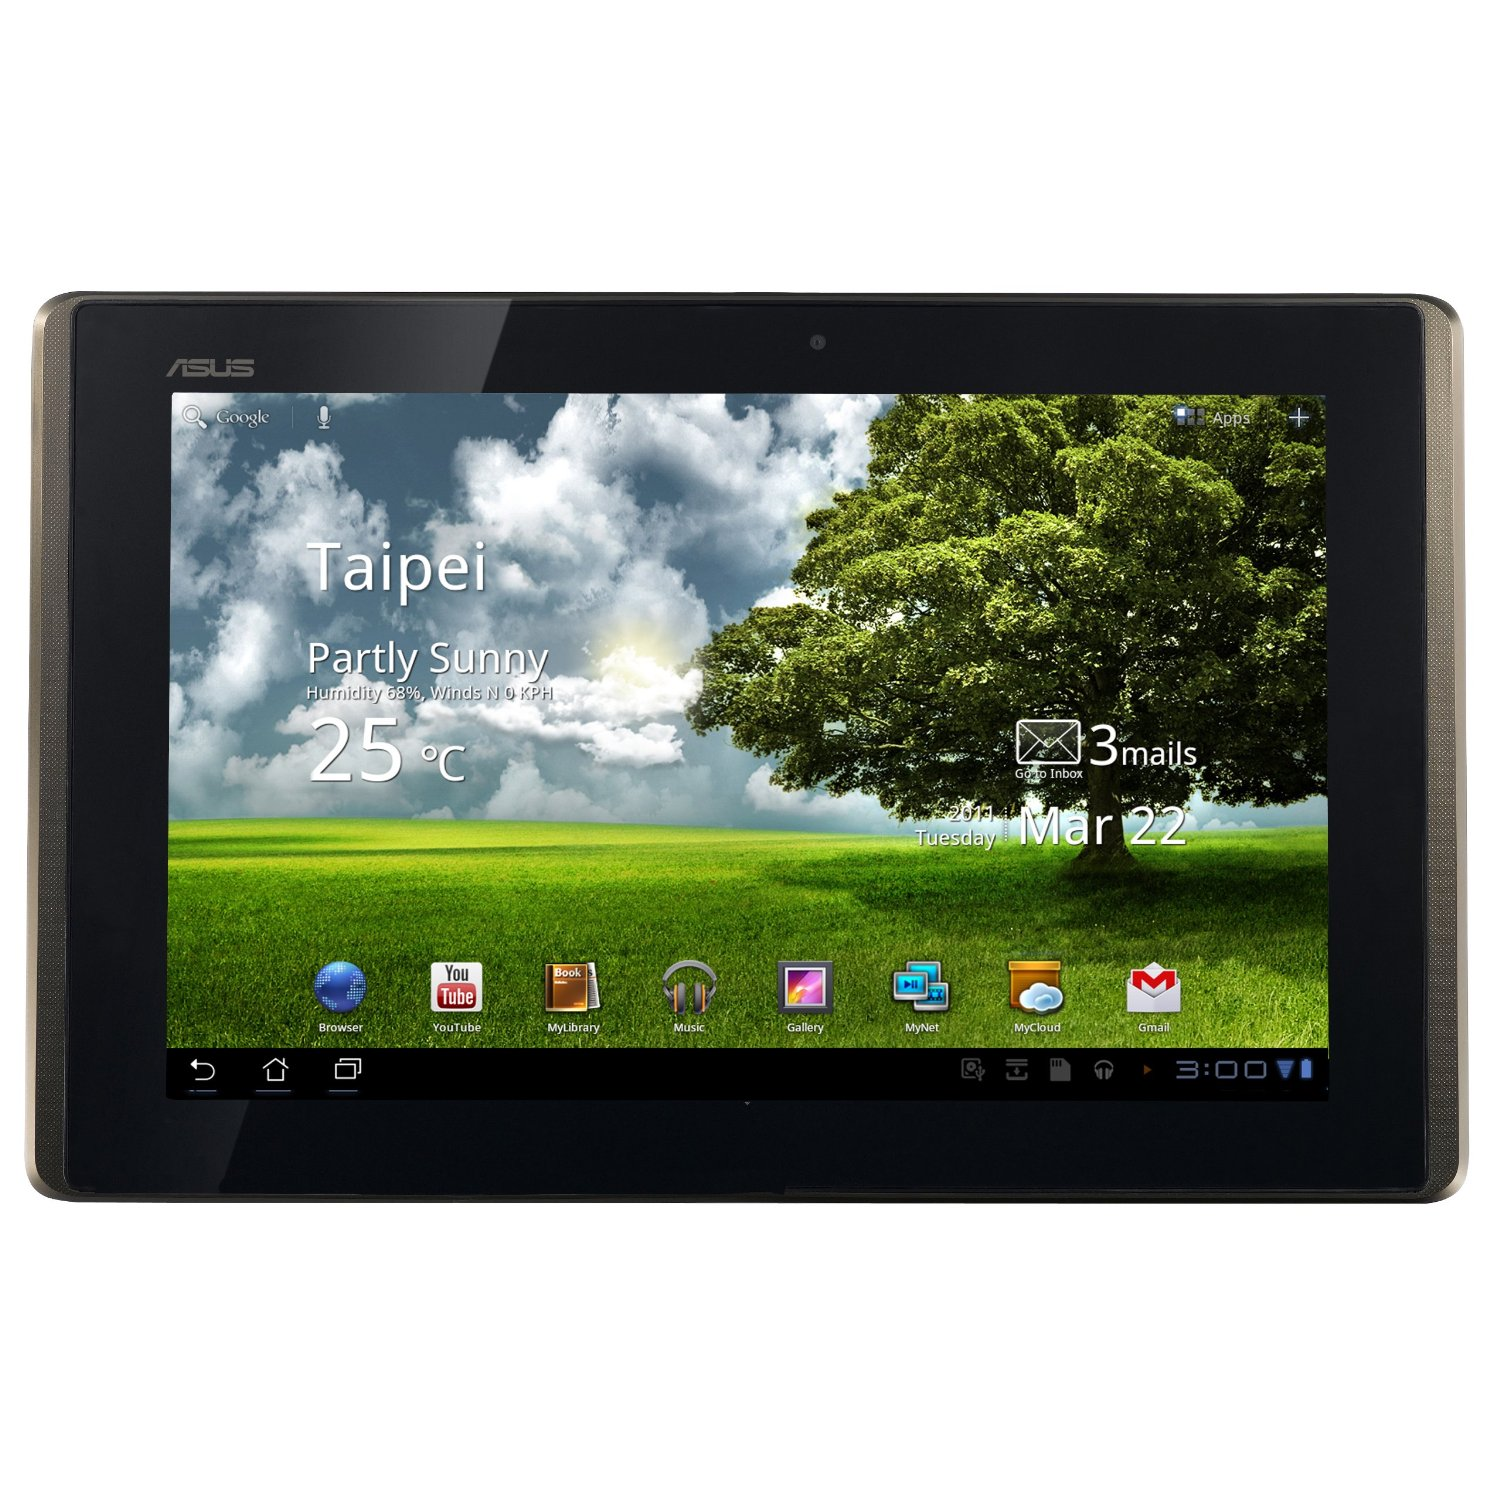 ASUS 101 Inch Android Tablet Eee Pad Transformer TF101A1